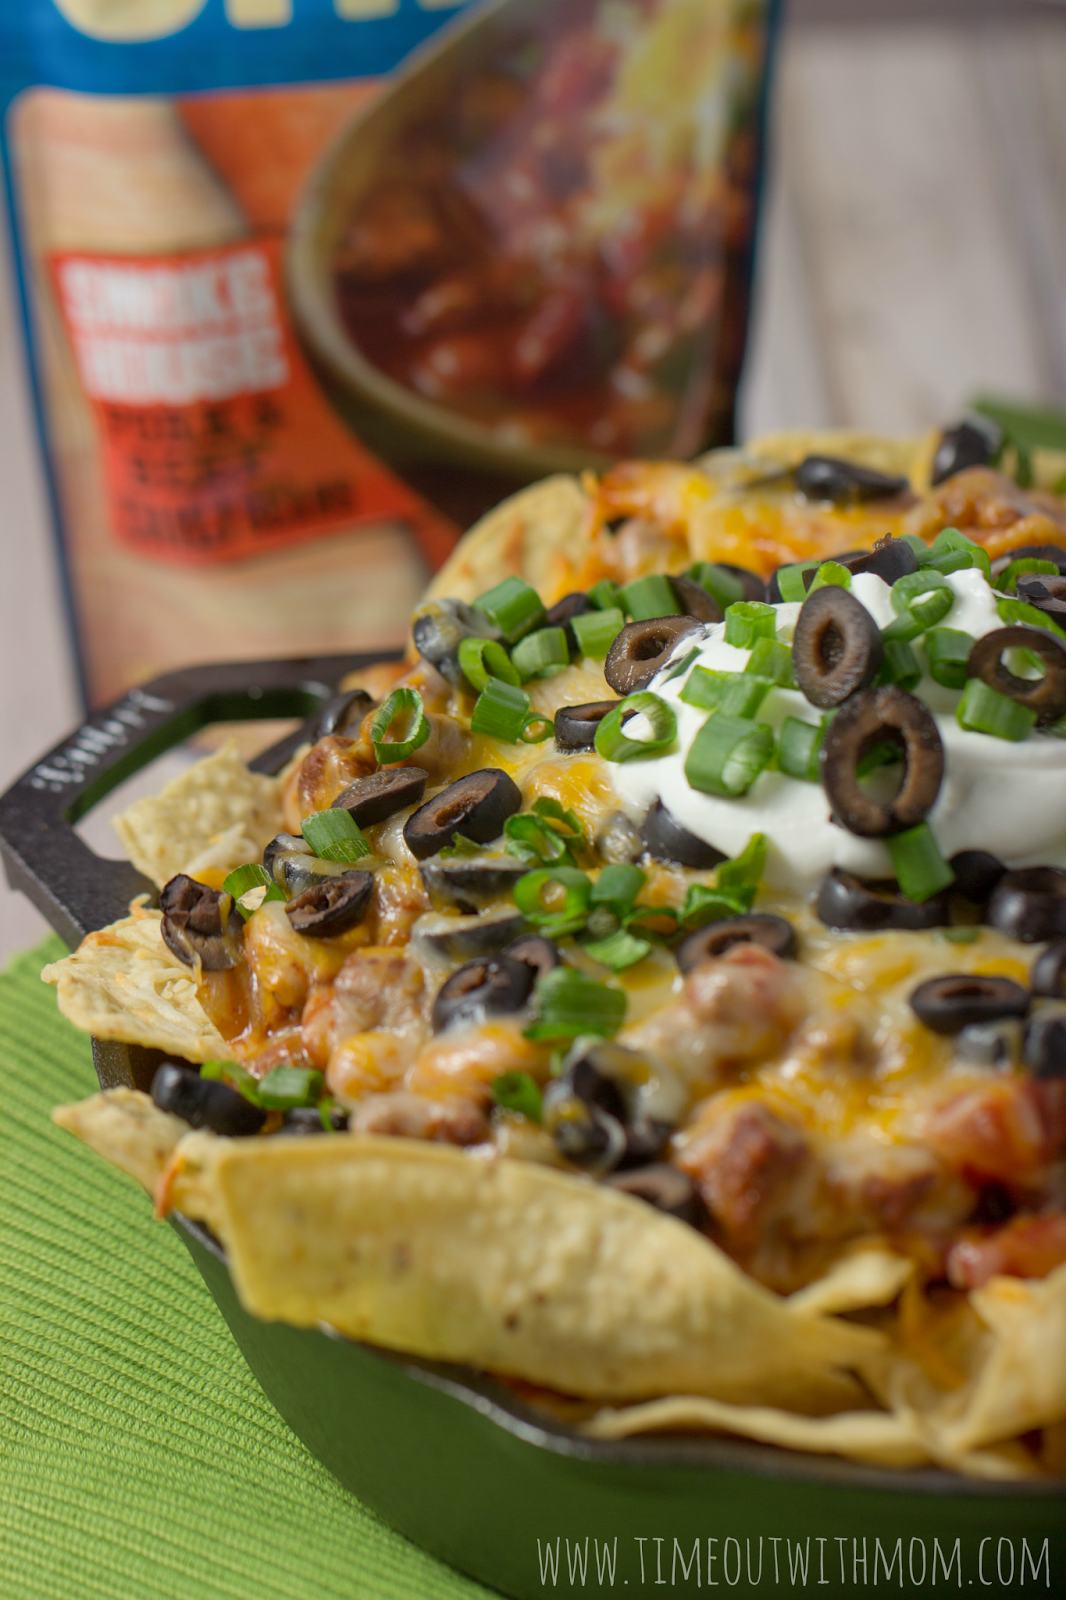 Game Day Chili Cheese Nachos with Progresso Chili